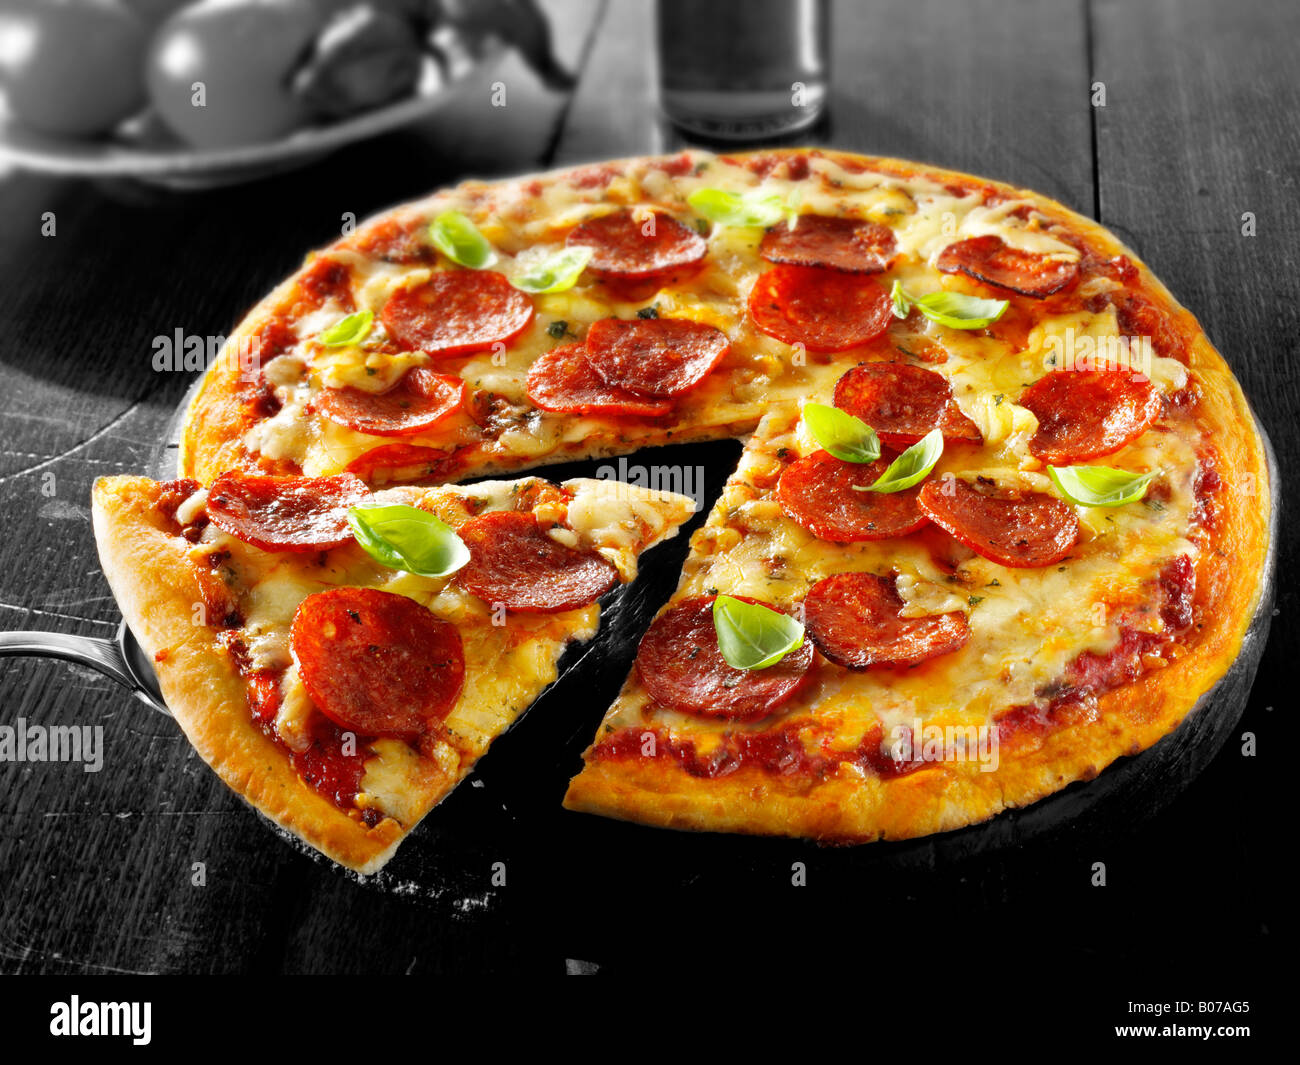 Rain crust pepperoni pizza with a slice out - Stock Image